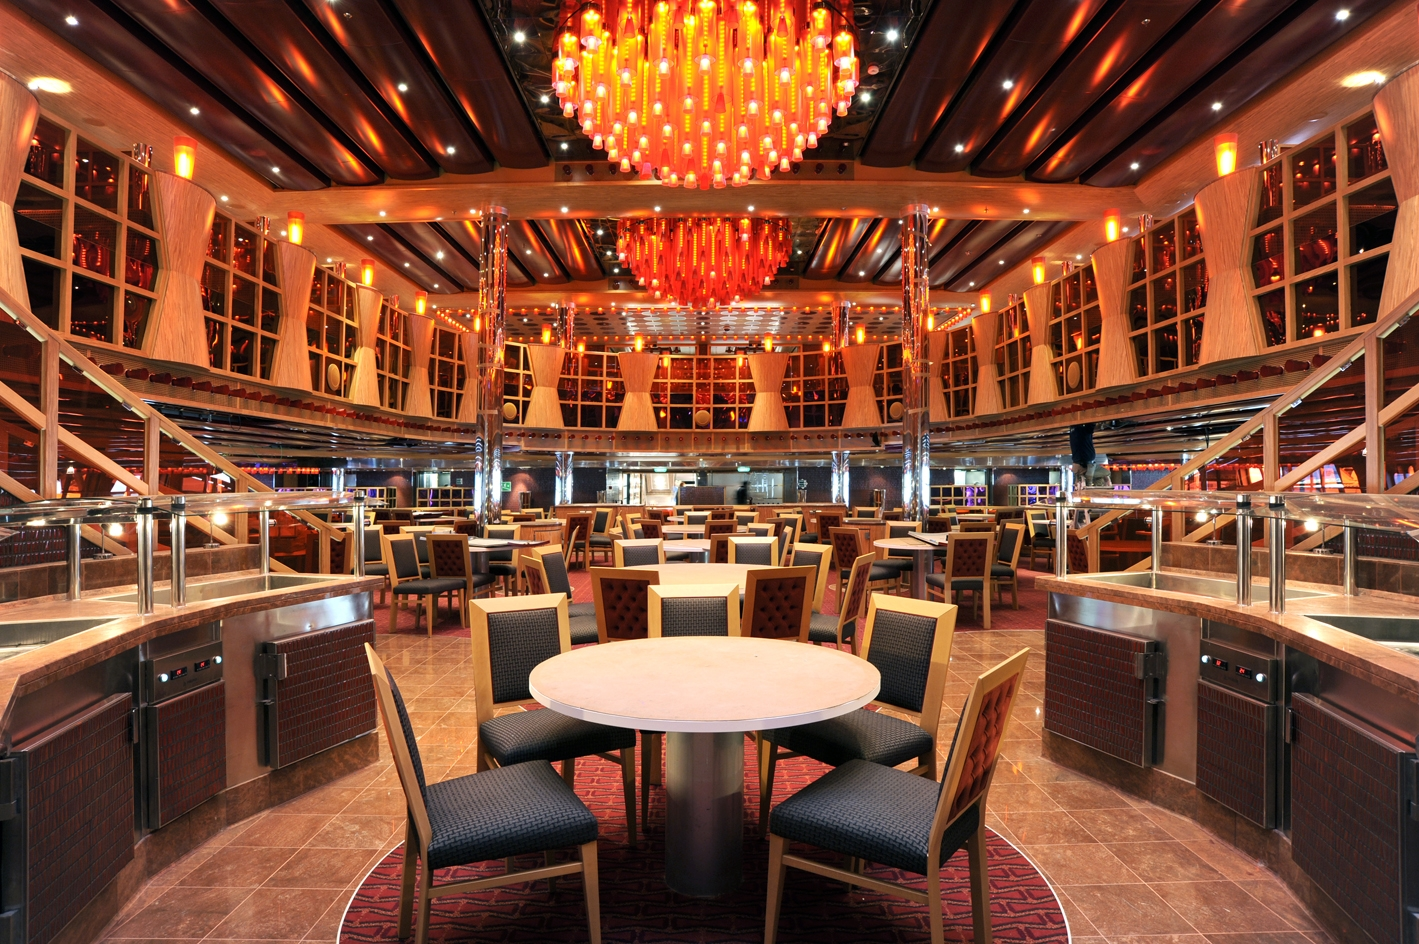 Big Dining Room Table Carnival Cruise Line News